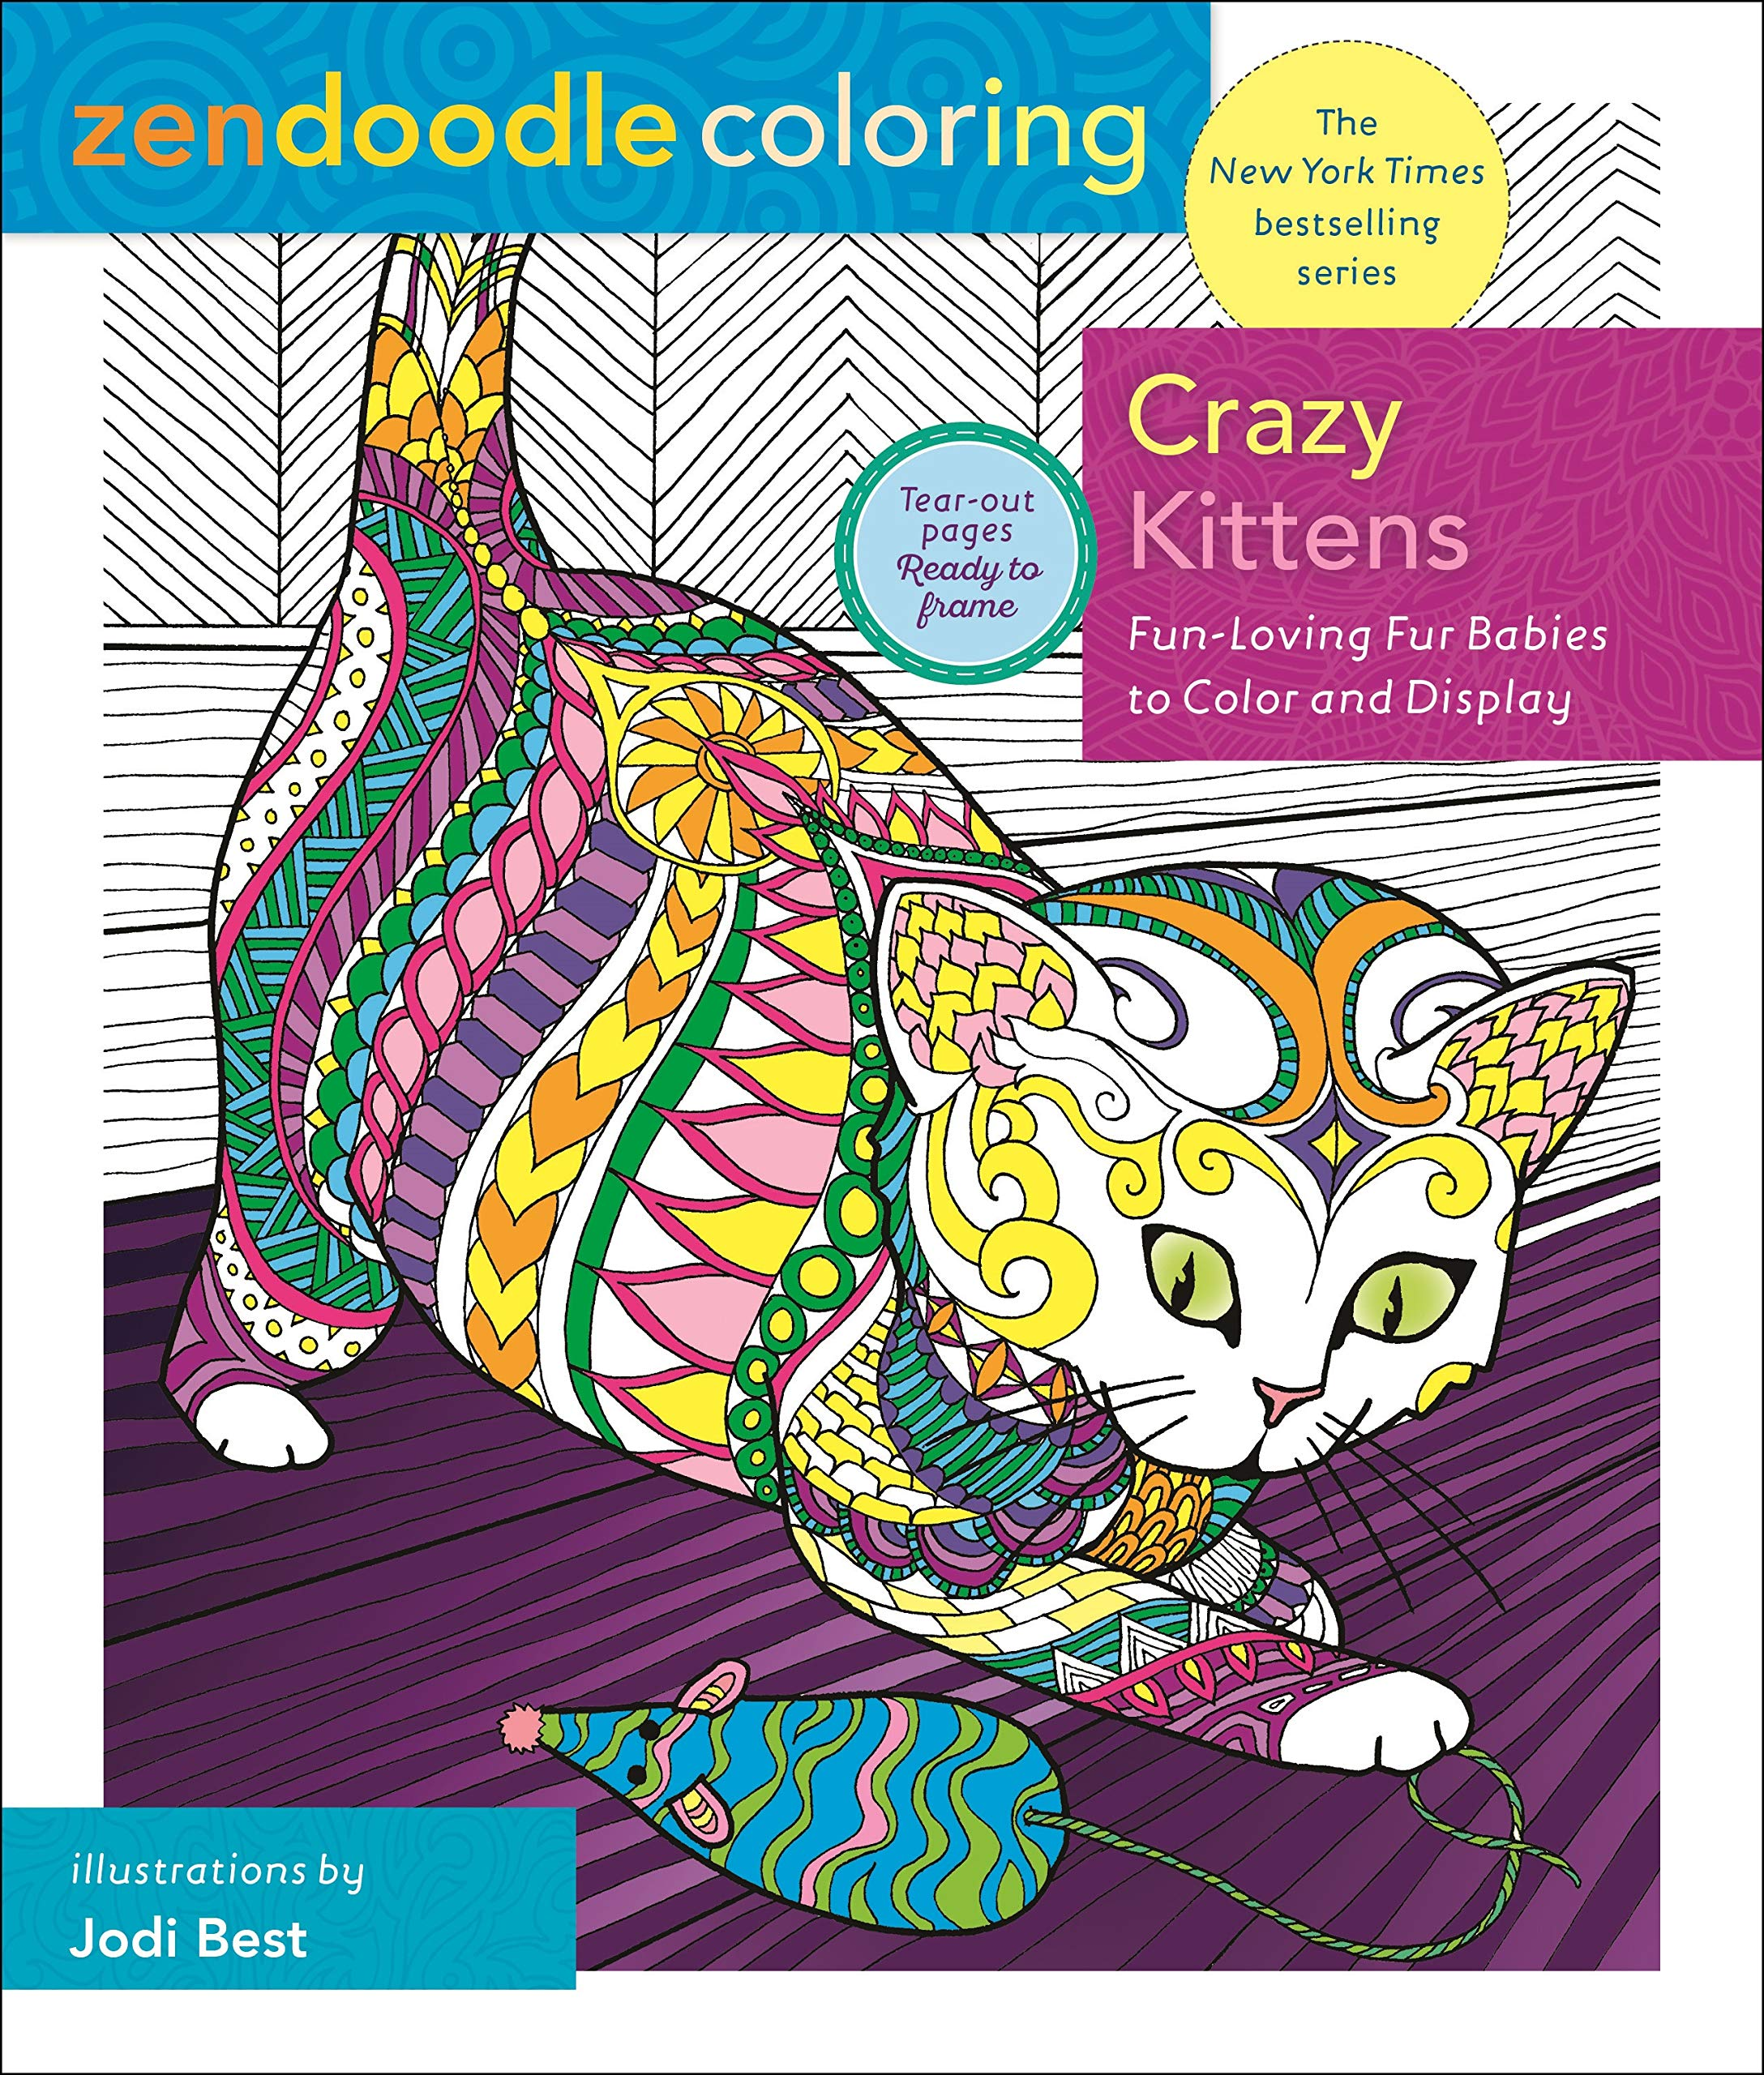 Amazon.com: Zendoodle Coloring: Crazy Kittens: Fun-Loving Fur Babies to  Color and Display (9781250202420): Best, Jodi: Books